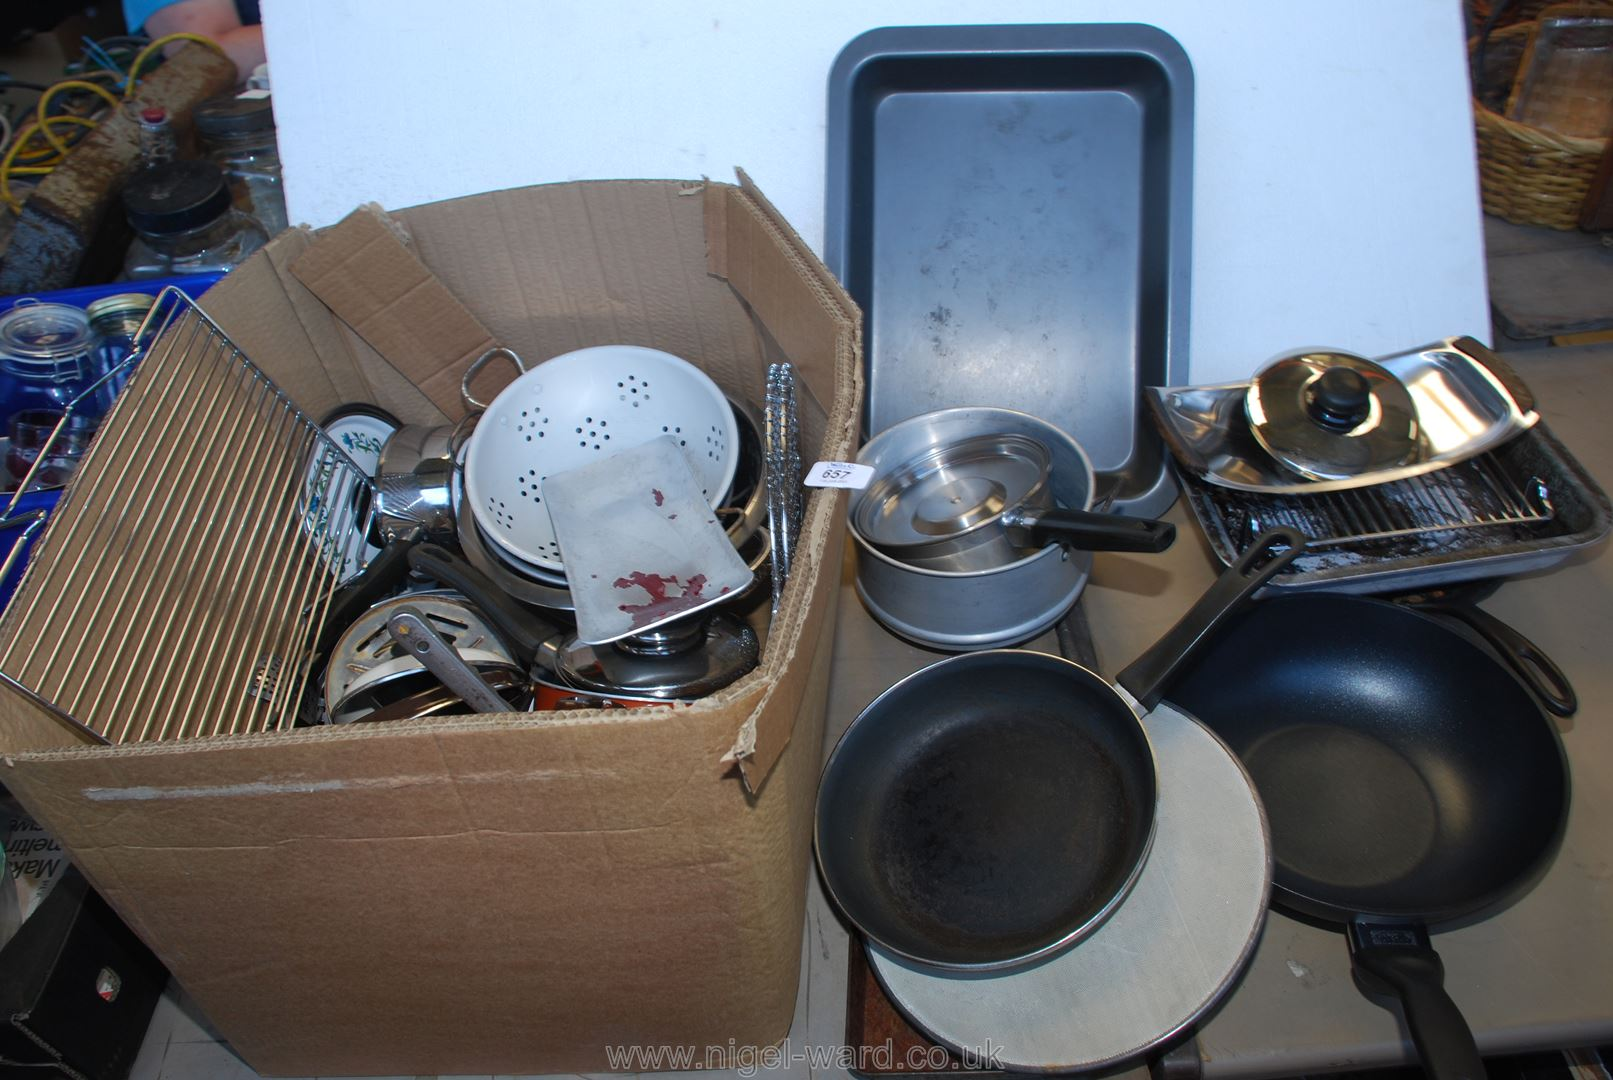 A box of kitchenware including a wok, roasting tin etc.